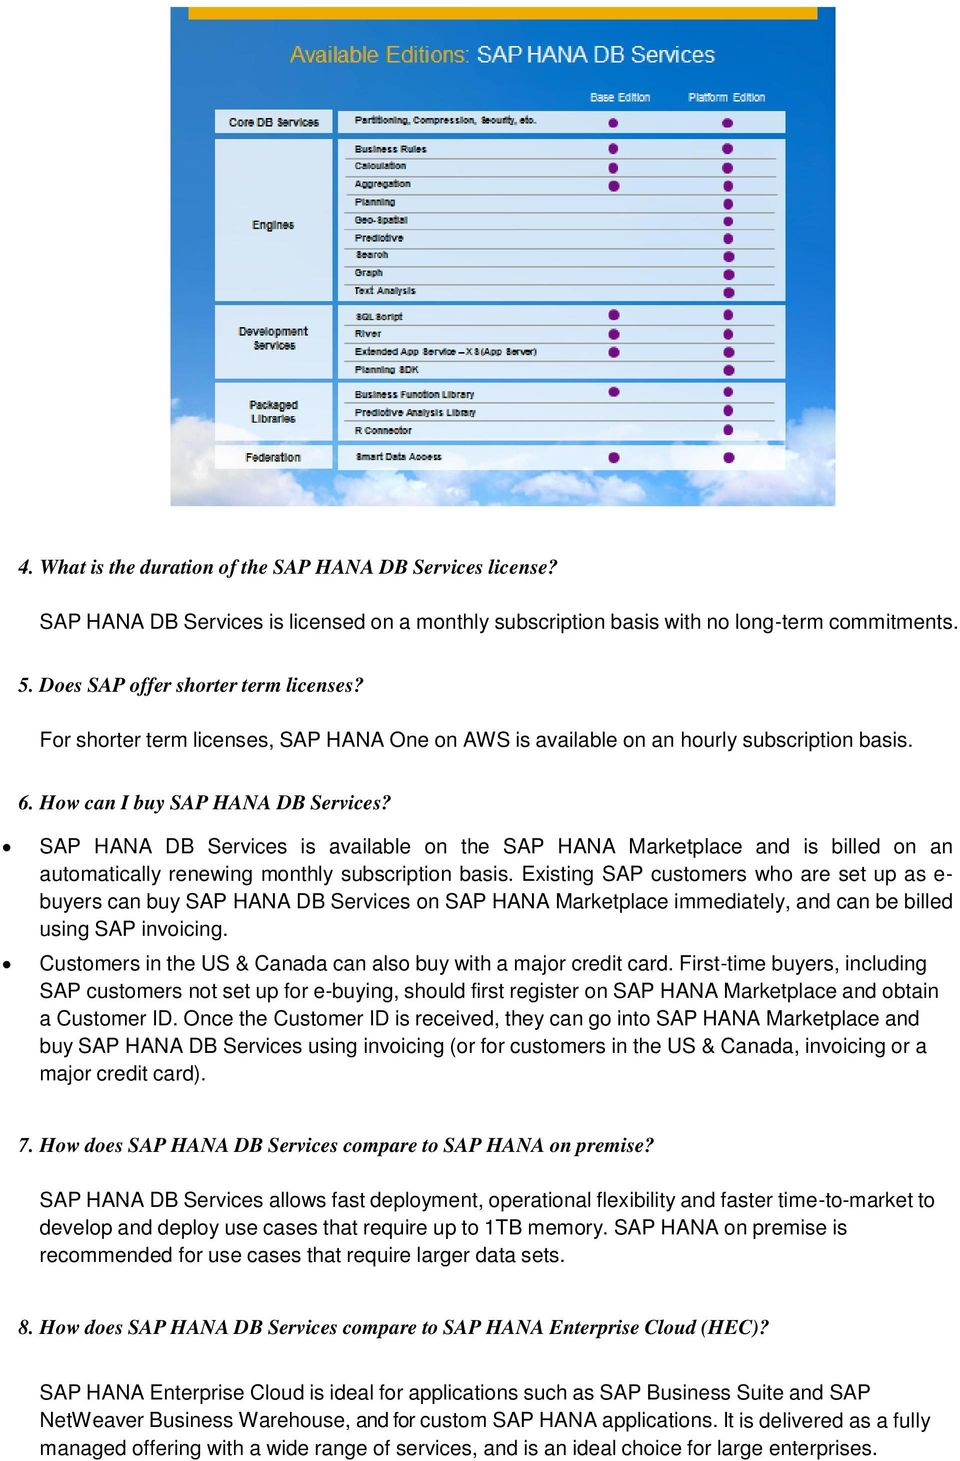 SAP HANA DB Services is available on the SAP HANA Marketplace and is billed on an automatically renewing monthly subscription basis.